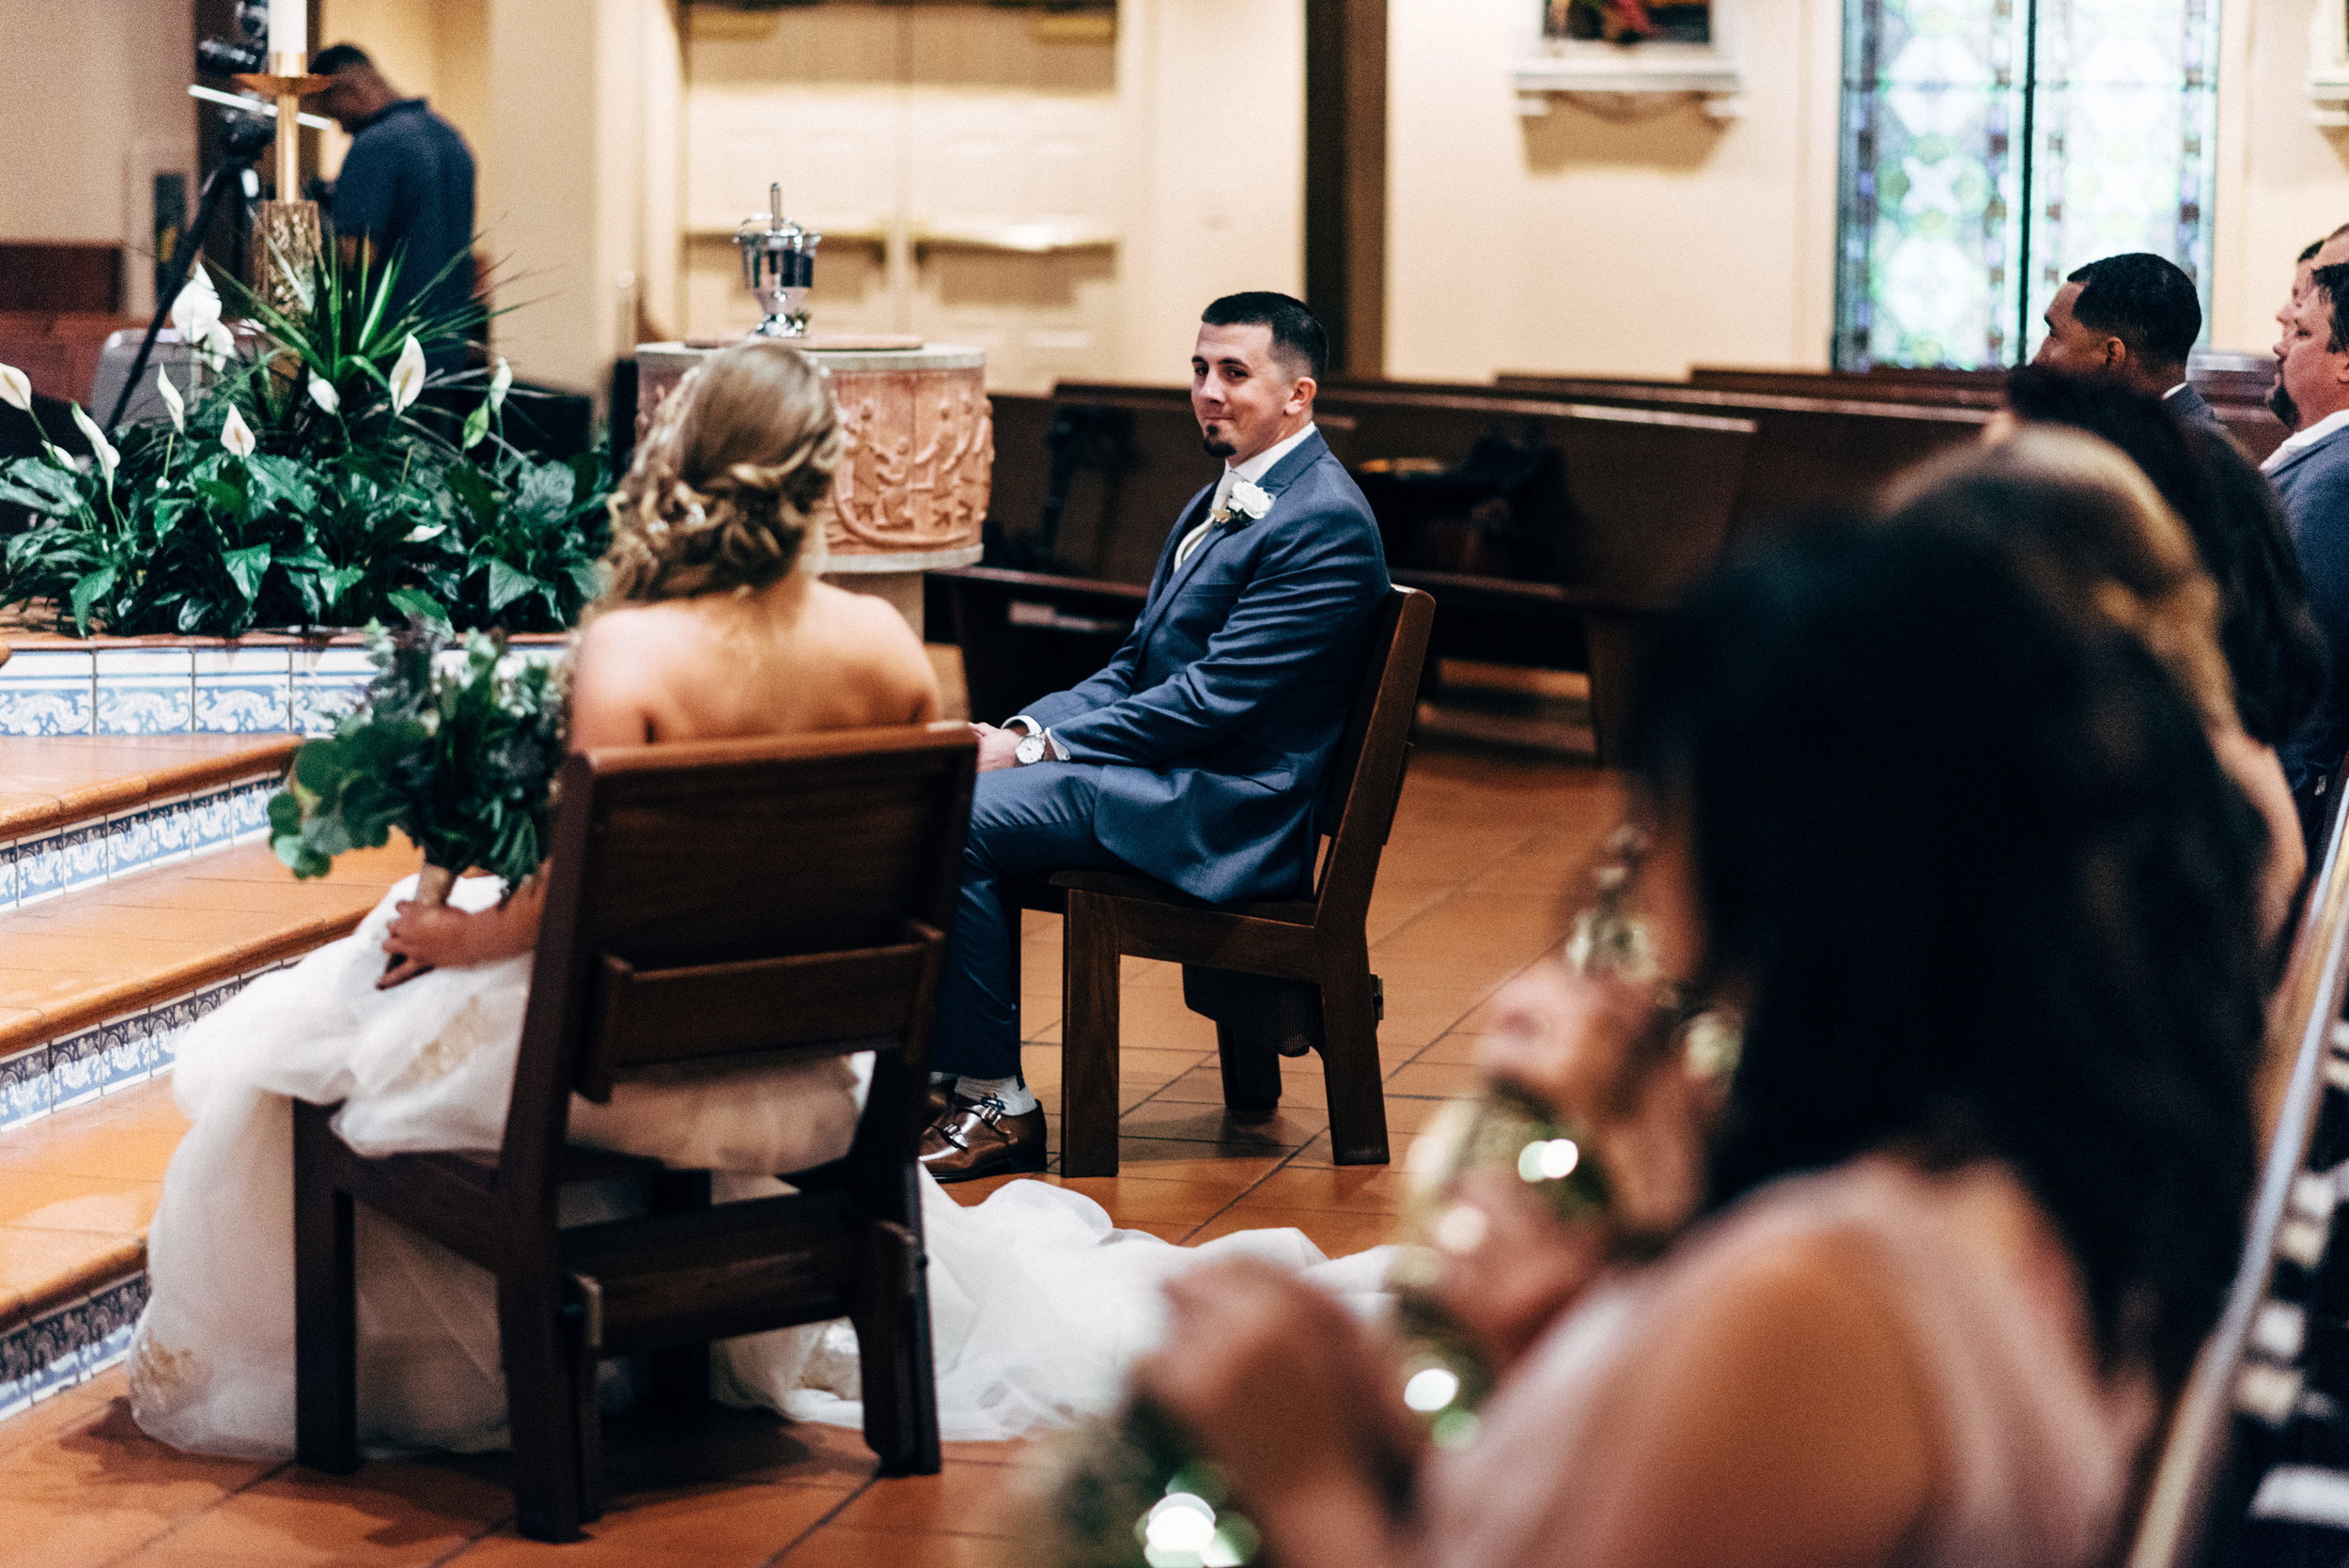 bride and groom sitting during wedding ceremony at St. Francis of Assisi Catholic Church